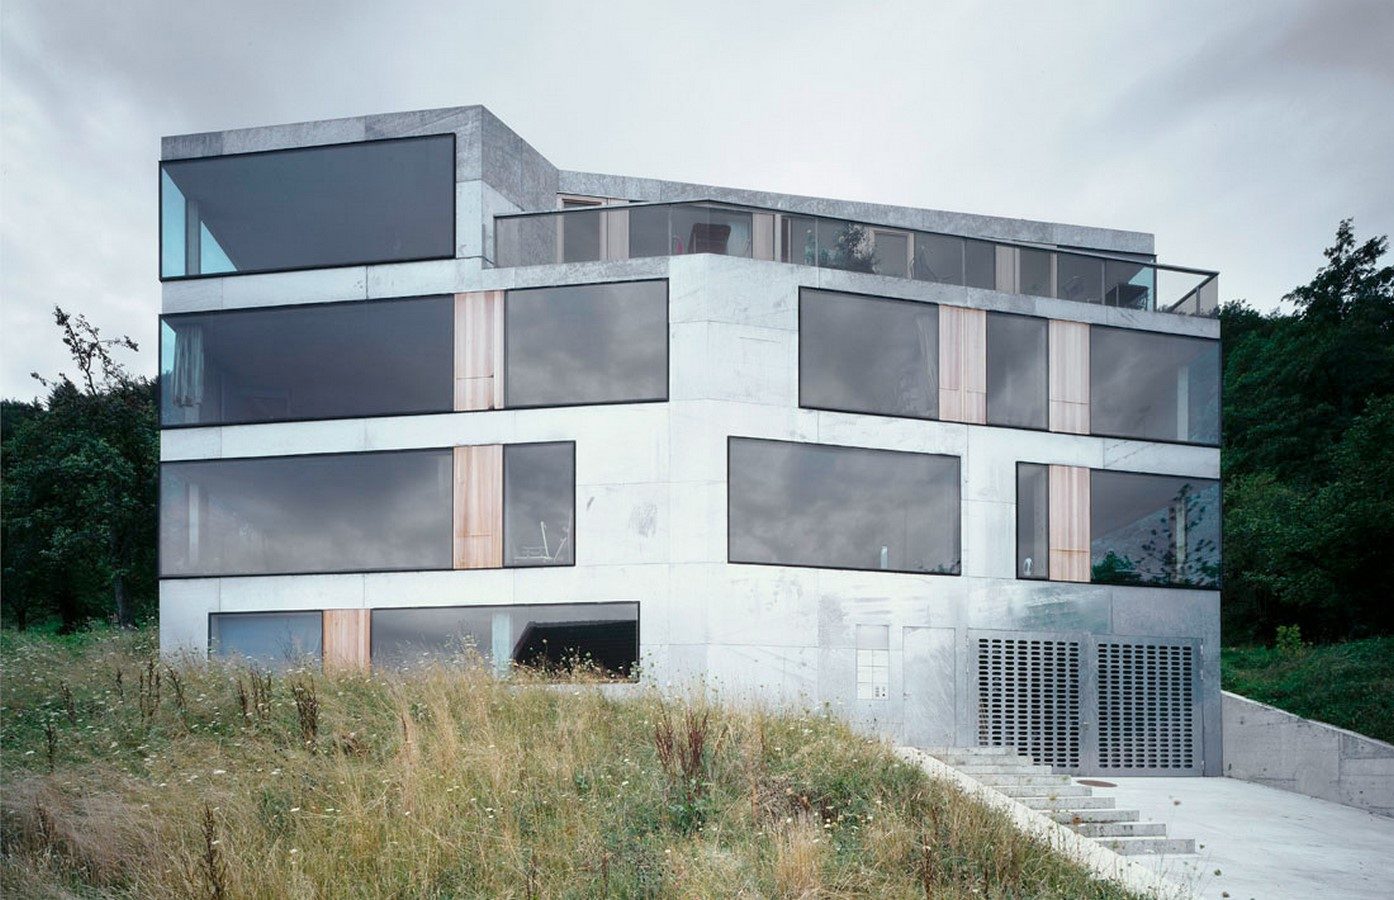 House for architects and artists, Zurich, Switzerland, 2004 - Sheet1